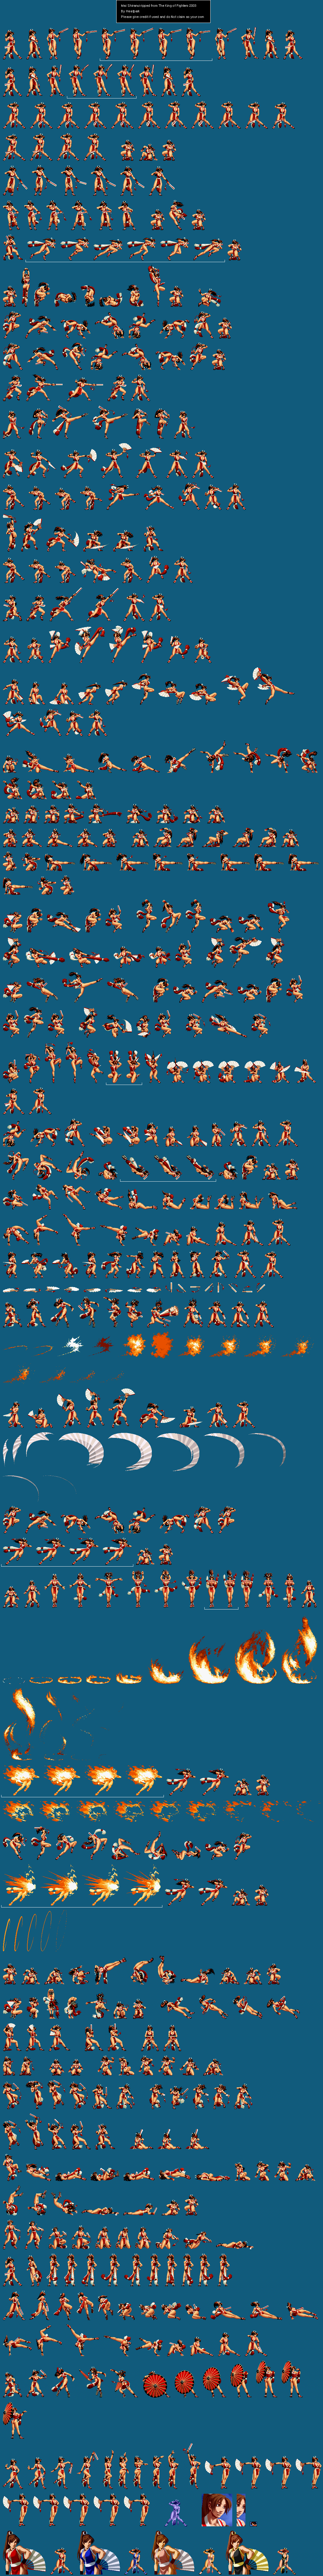 Sprite Database Mai Shiranui In 2021 Sprite Sprite Database King Of Fighters